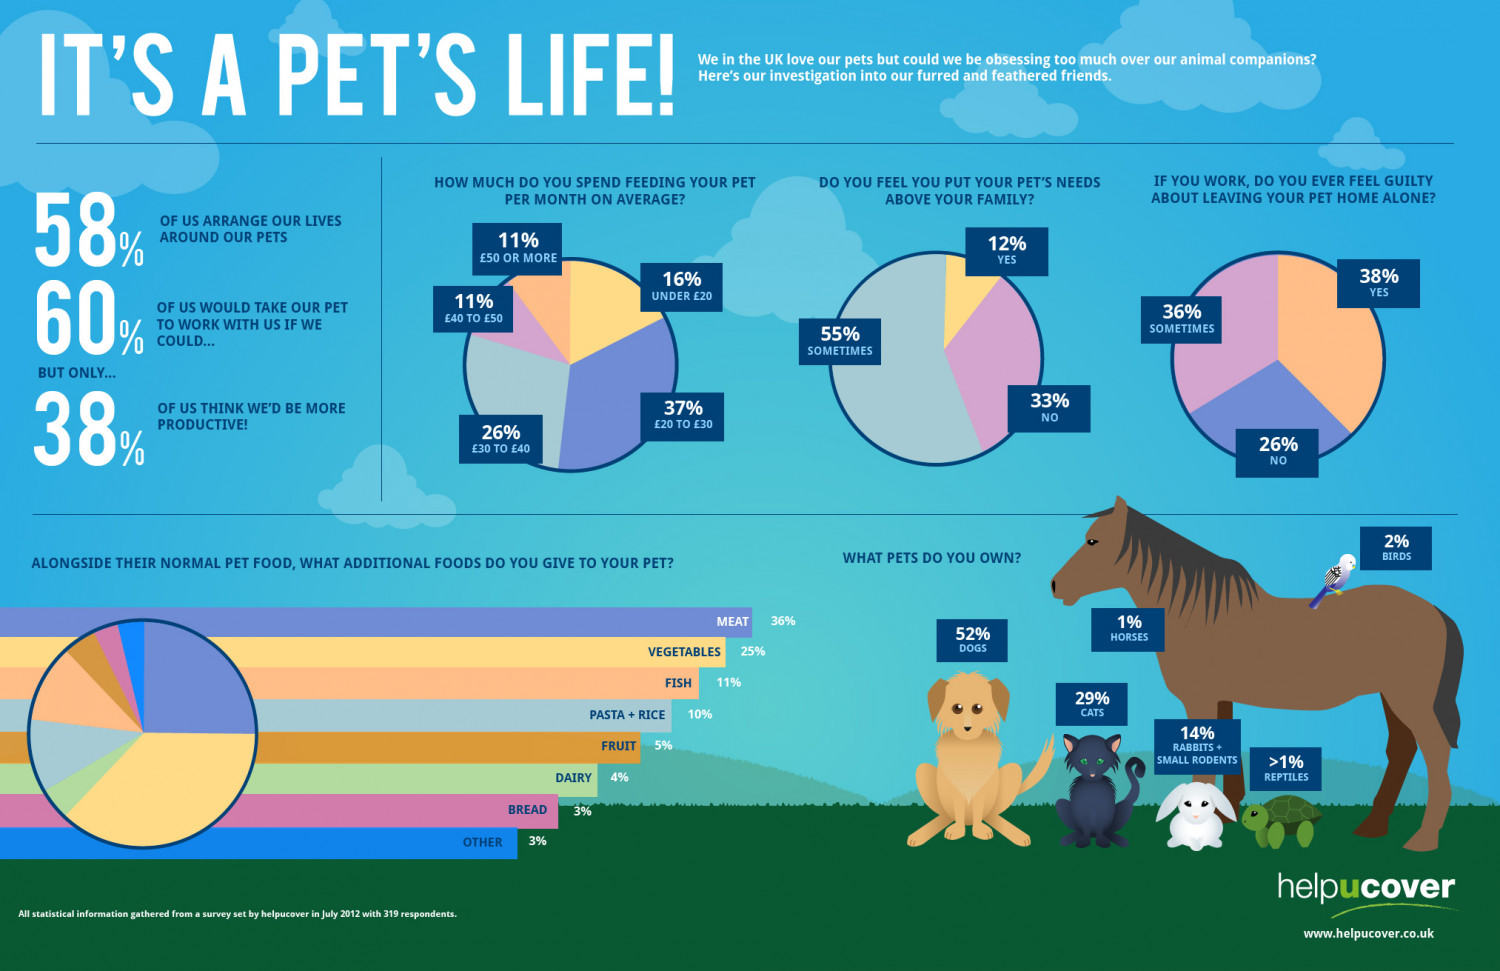 Helpucover - It's a Pet's Life! Infographic